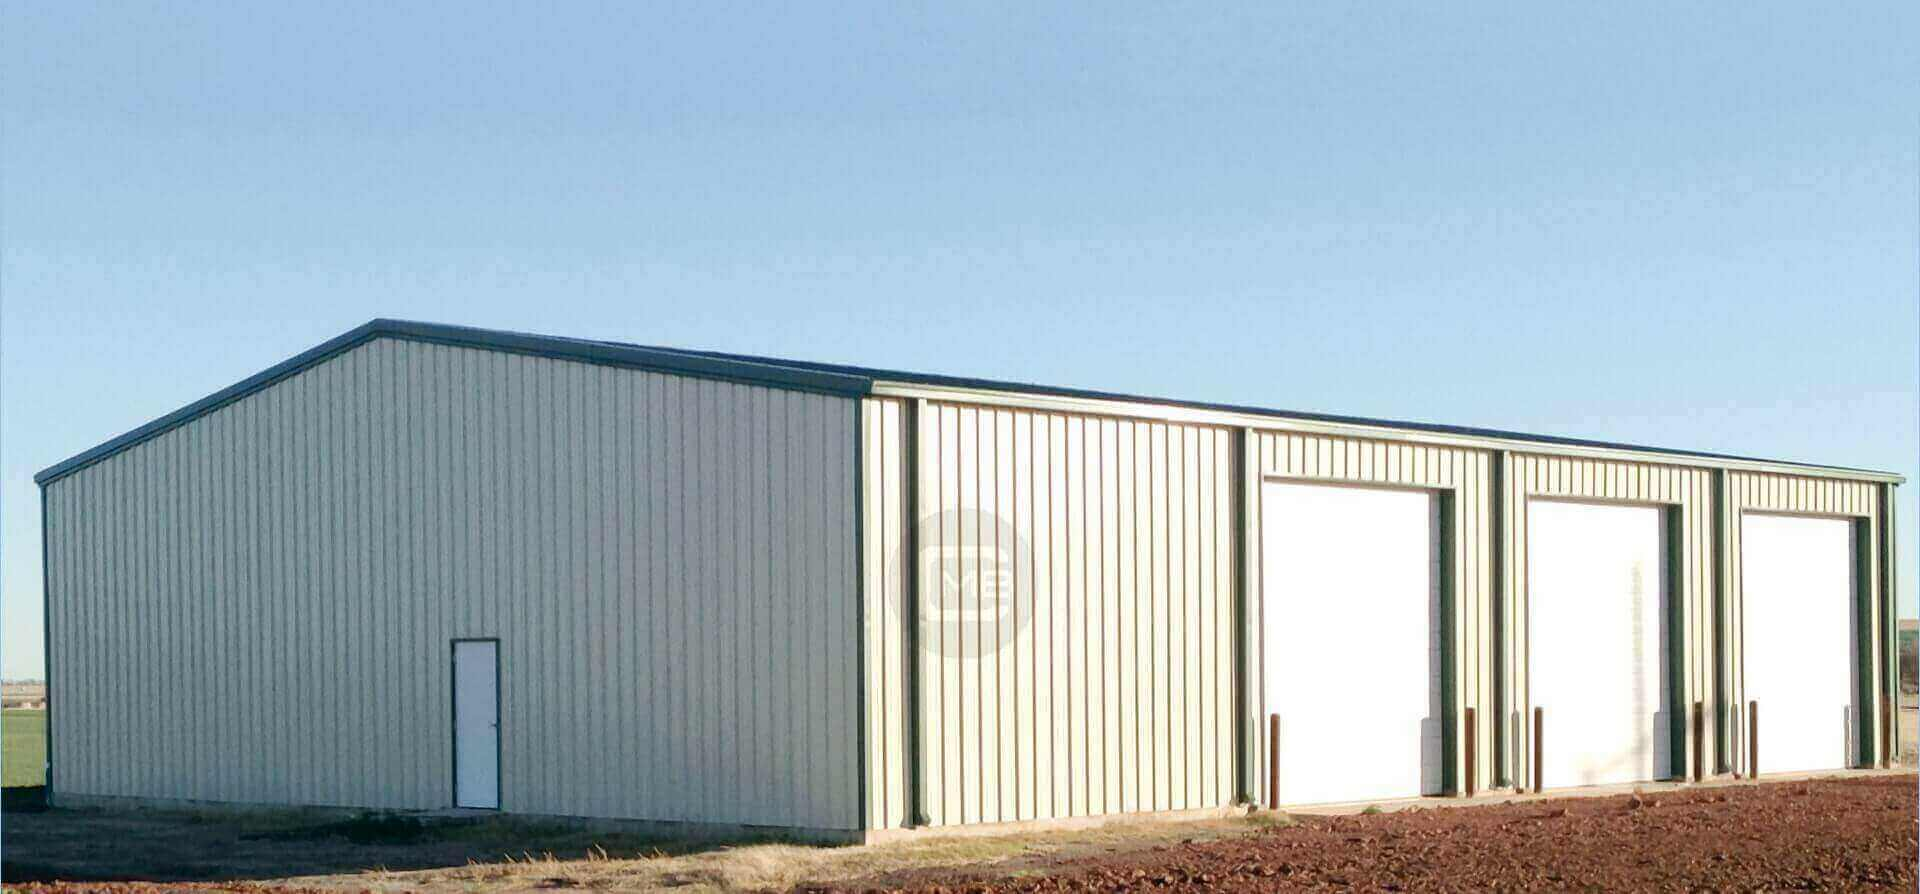 Metal Buildings Lowest Prices On Barns, Garages, Carports, U0026 RV Covers.